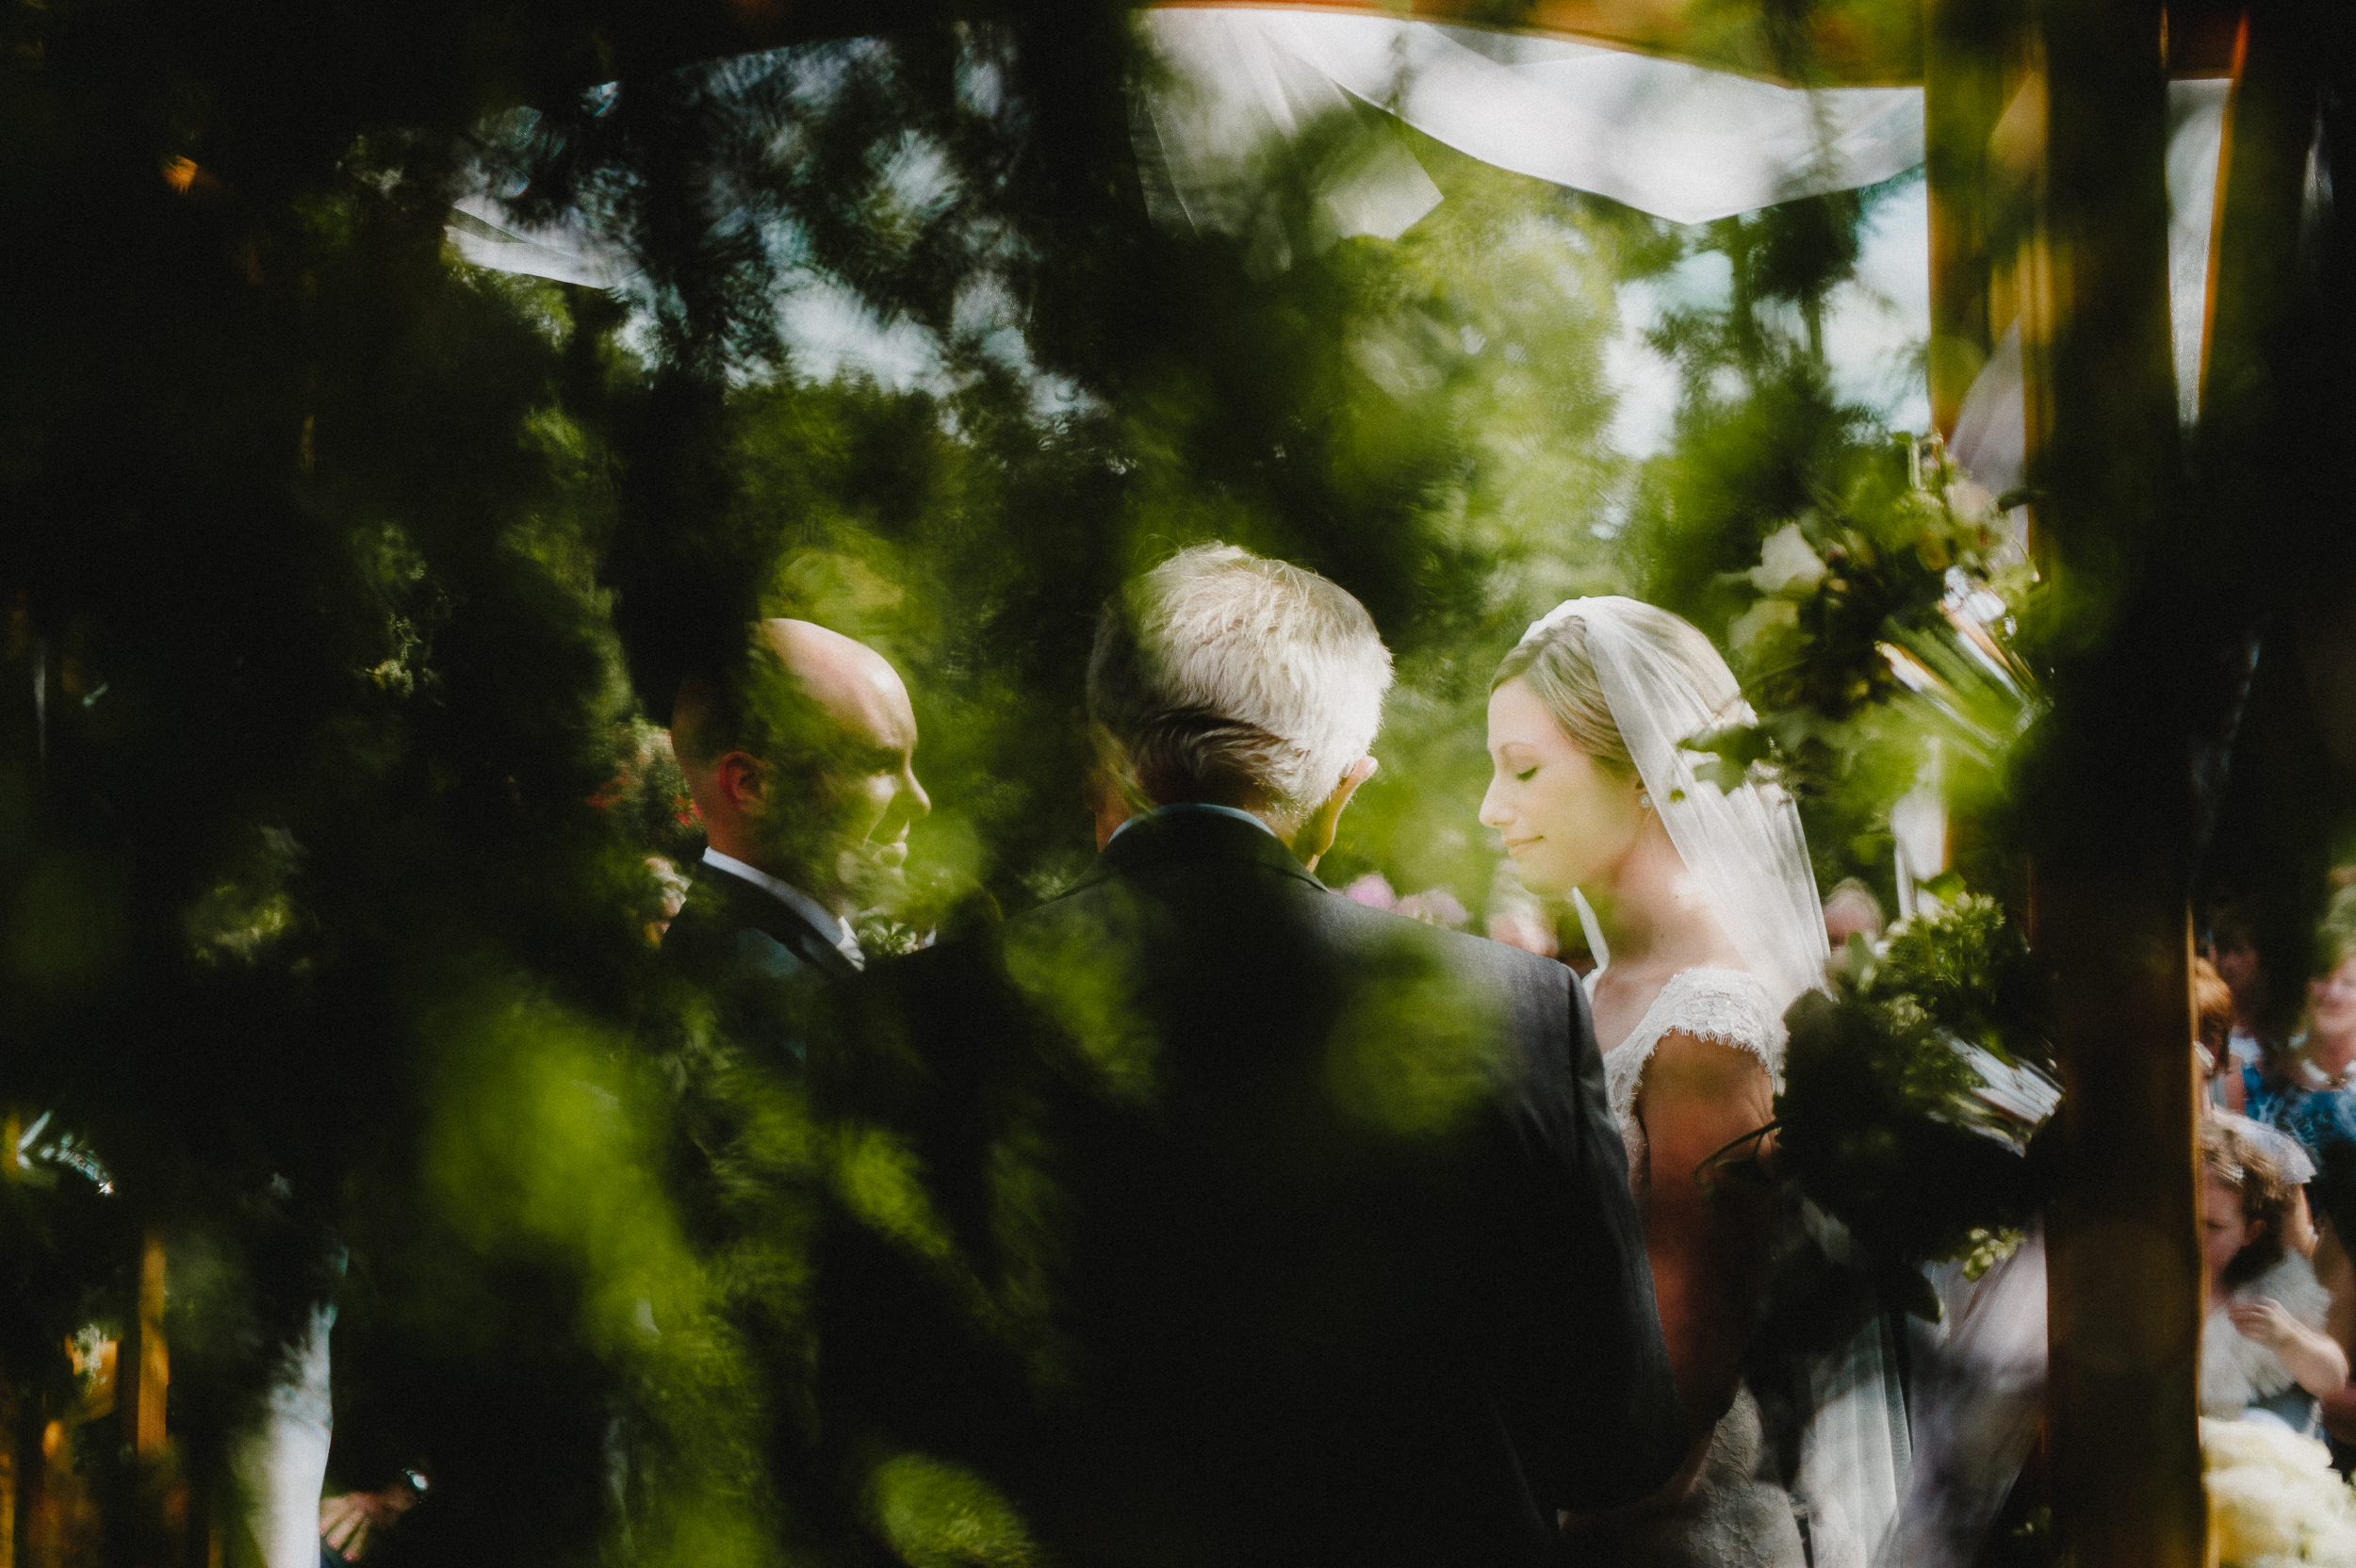 pat-robinson-photography-rockwood-carriage-house-wedding-photographer-69.jpg